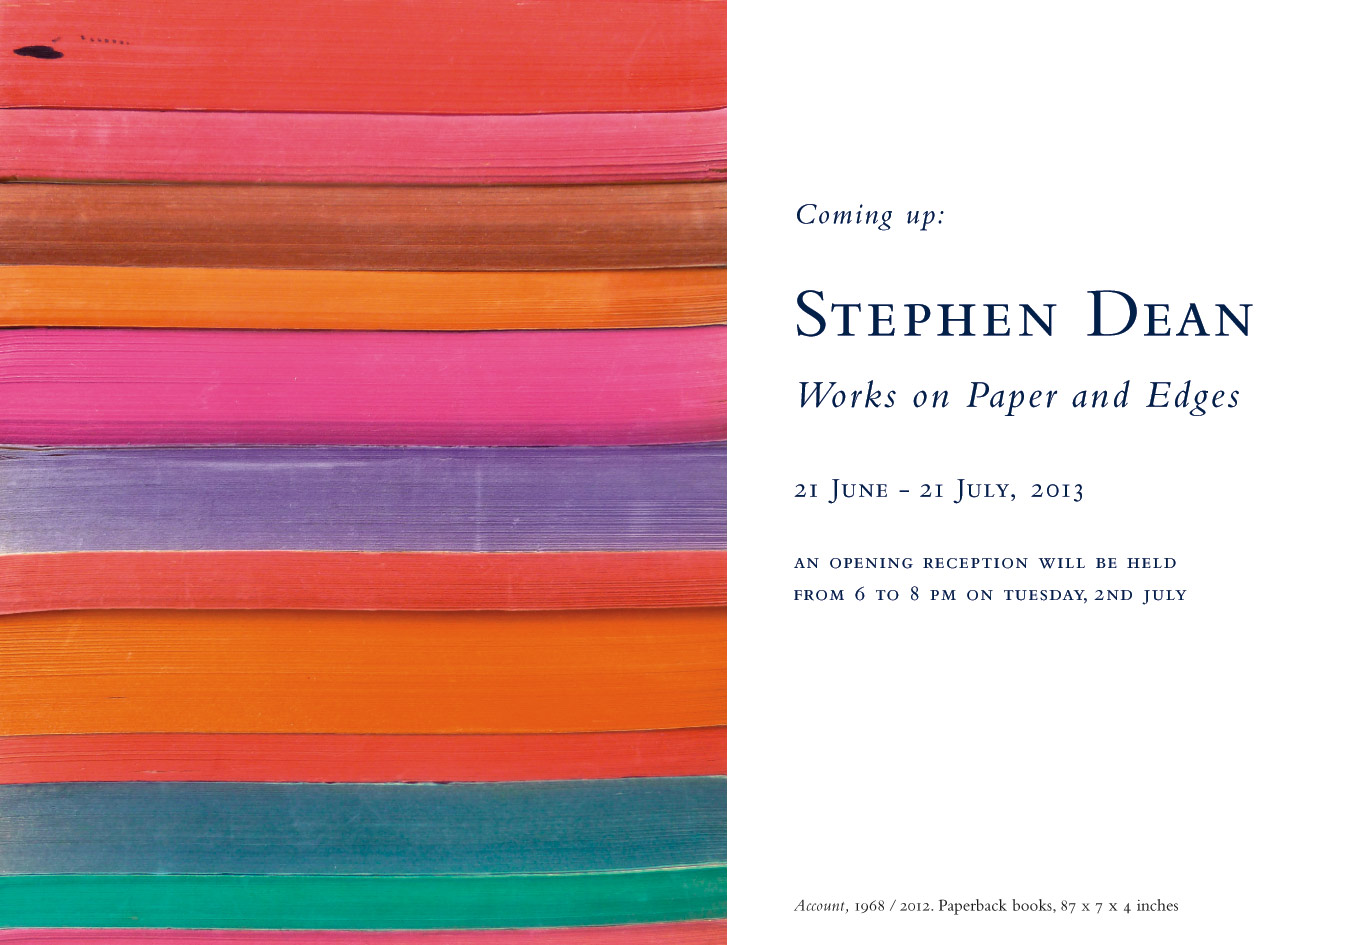 Stephen Dean: Works on Paper and Edges, at Baldwin Gallery, Aspen, 21 June - 21 July, 2013